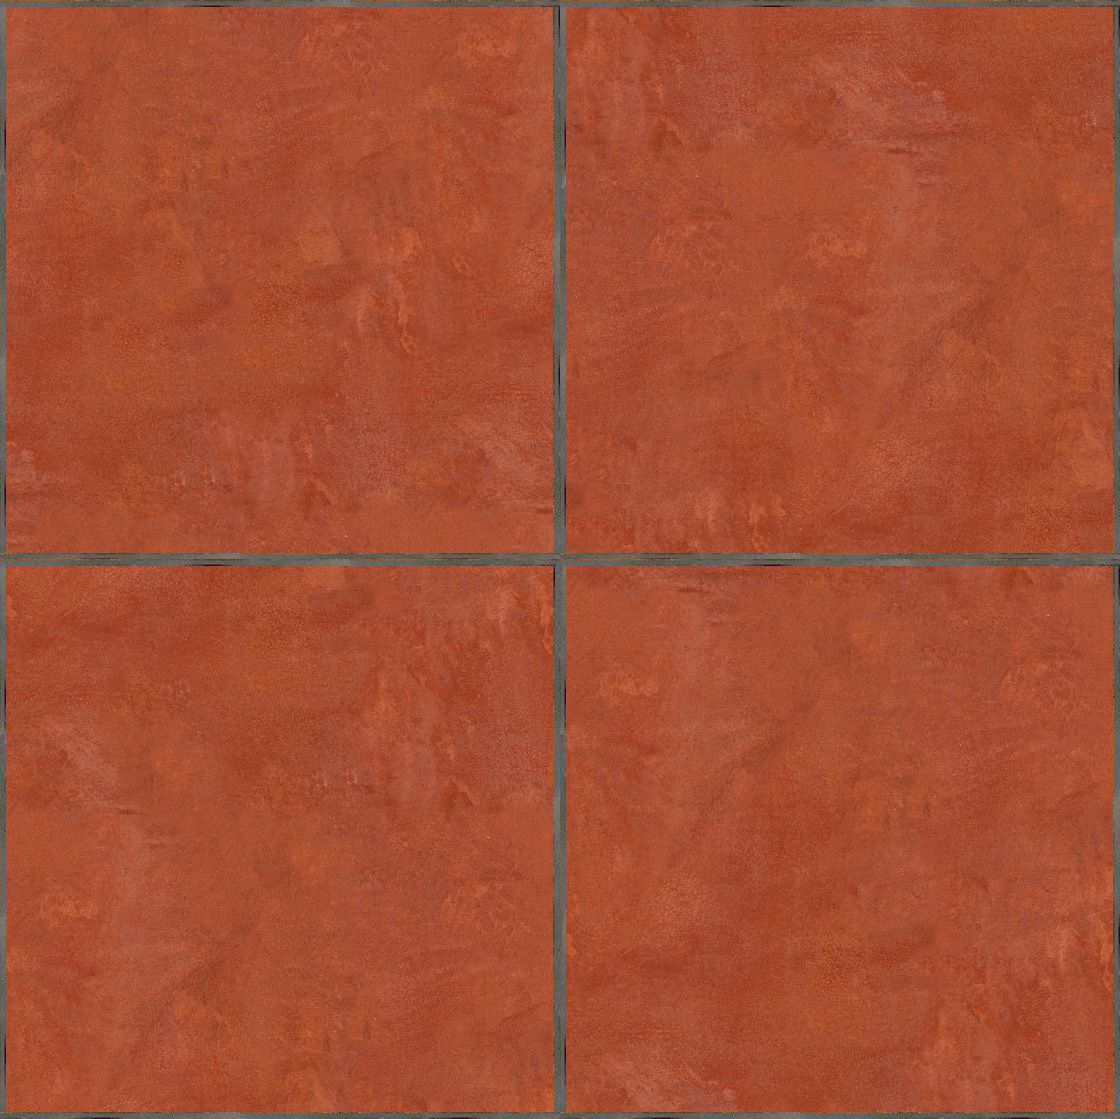 Texturise free seamless tileable textures and mapstextures with texturise free seamless tileable textures and mapstextures with bump specular and displacement maps for terracotta tilered floortexture dailygadgetfo Choice Image